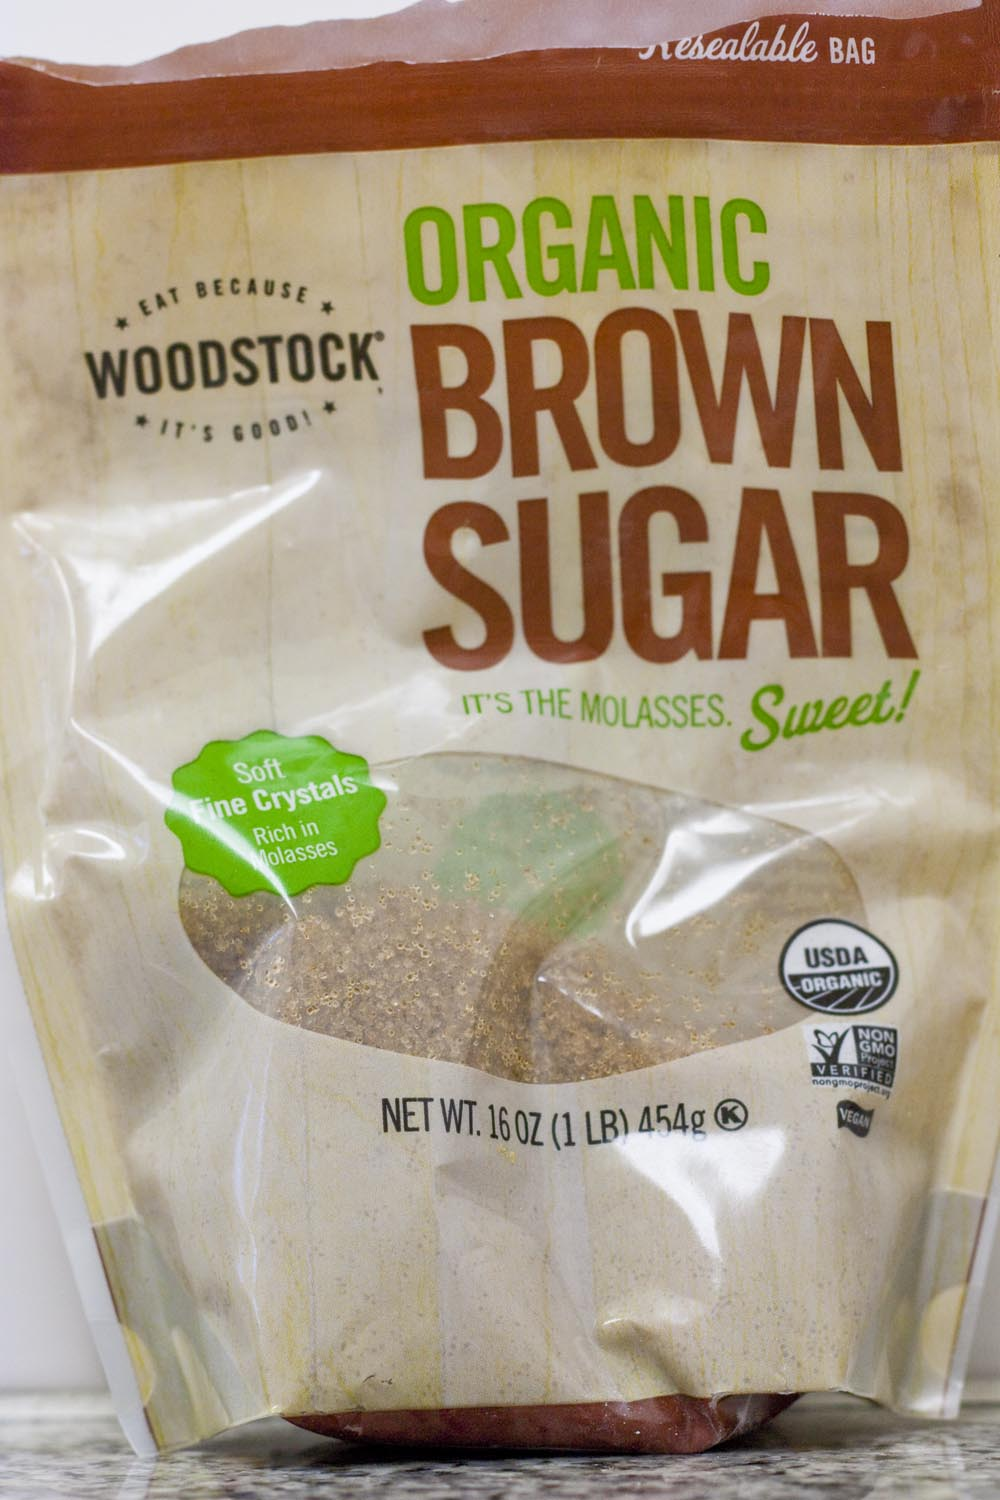 Brown sugar, whether organic or not, is only slightly less refined than crystallized sugar and has barely detectable nutrient levels.